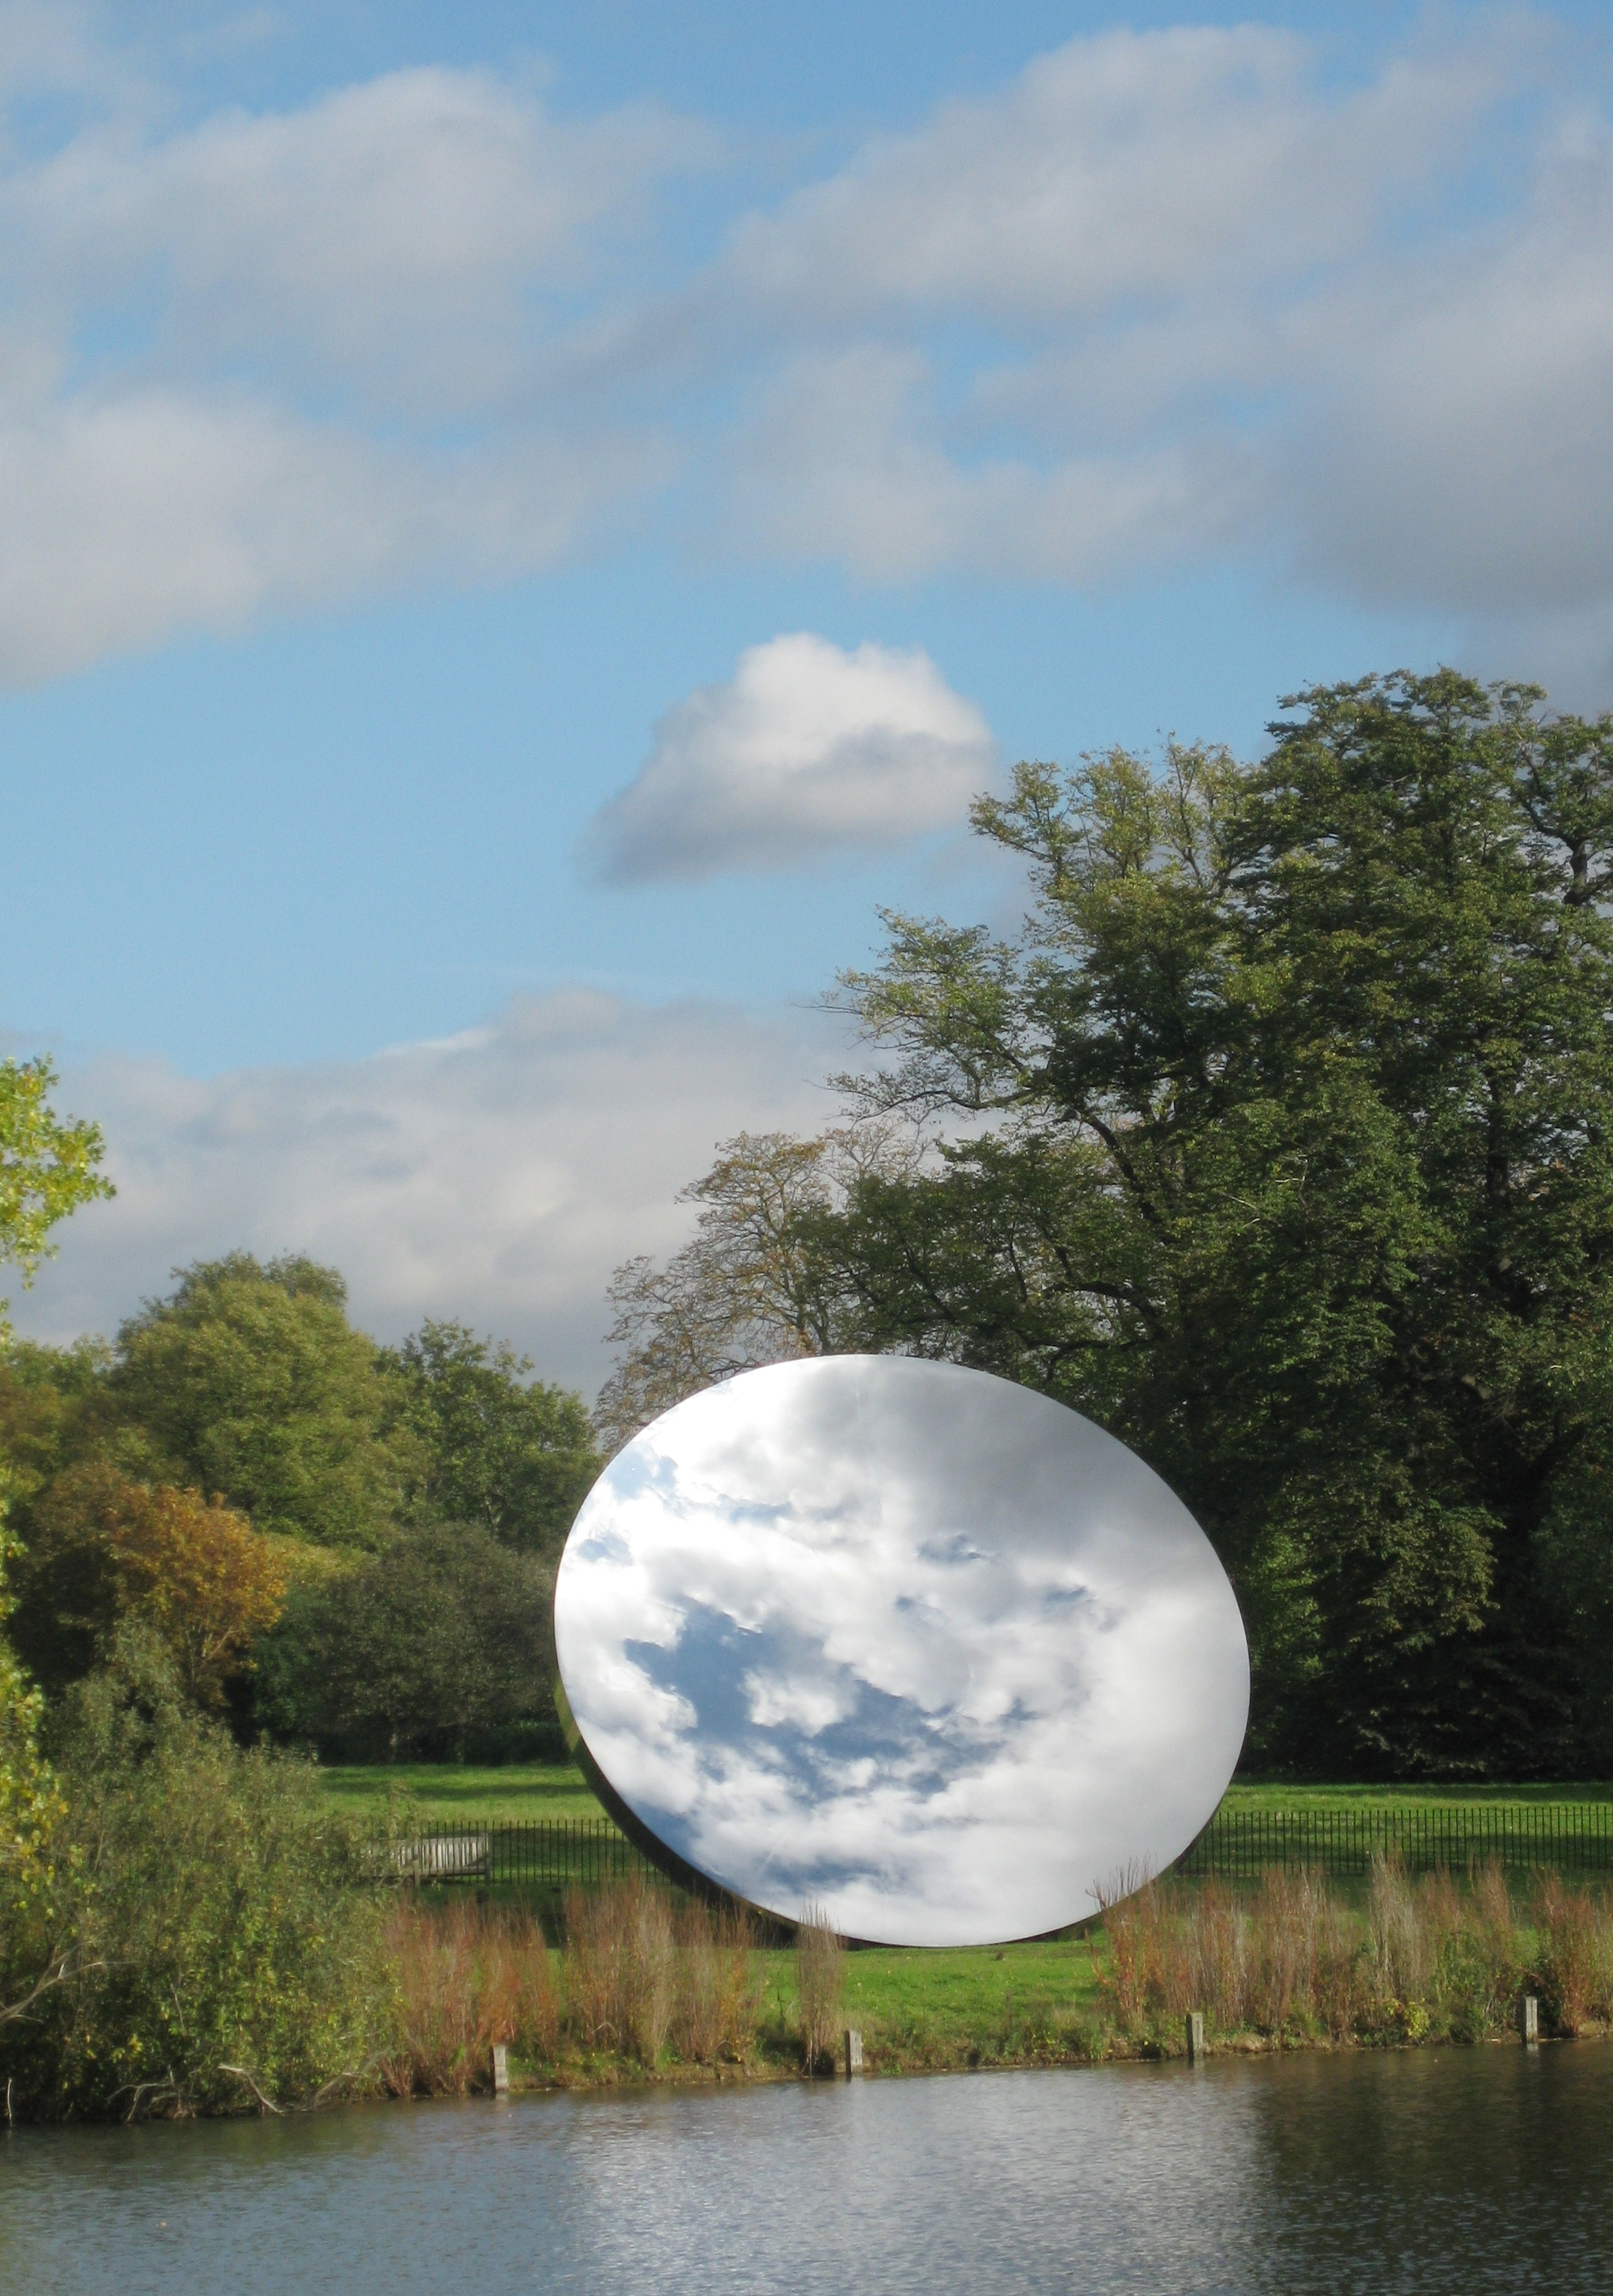 Anish Kapoor's Sky Mirror before it was delivered to AT&T Stadium and destroyed the moon.